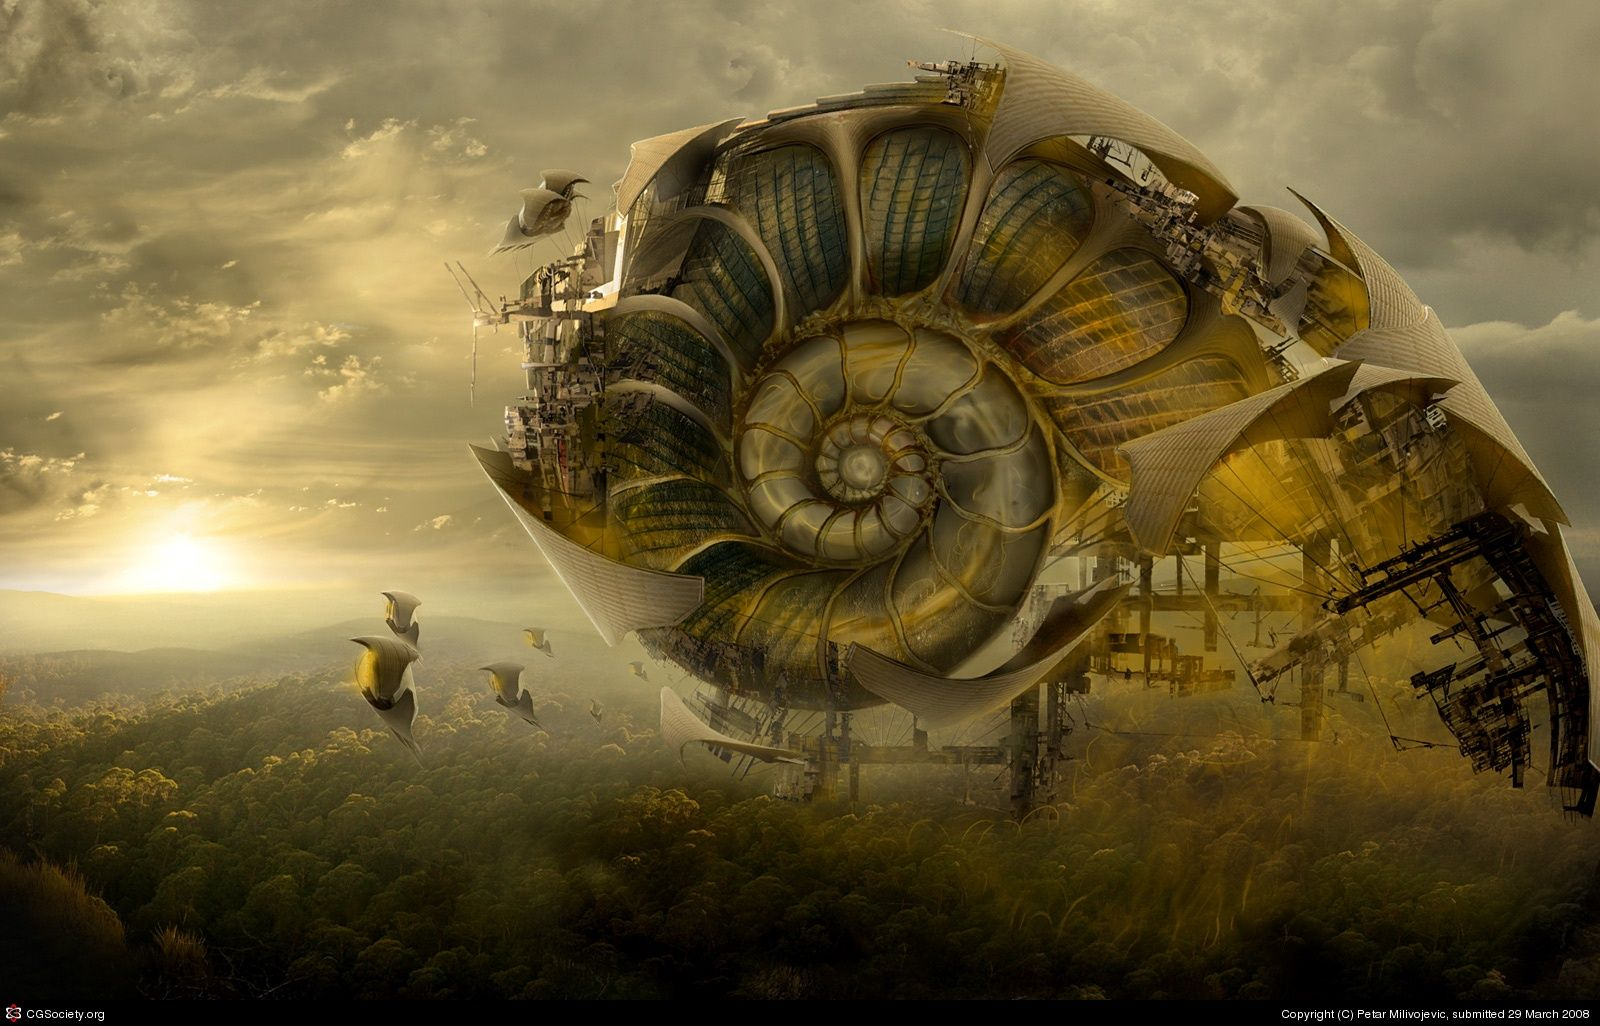 Fibonacci Spiral In Nature | Sci-fi art by Petar ...